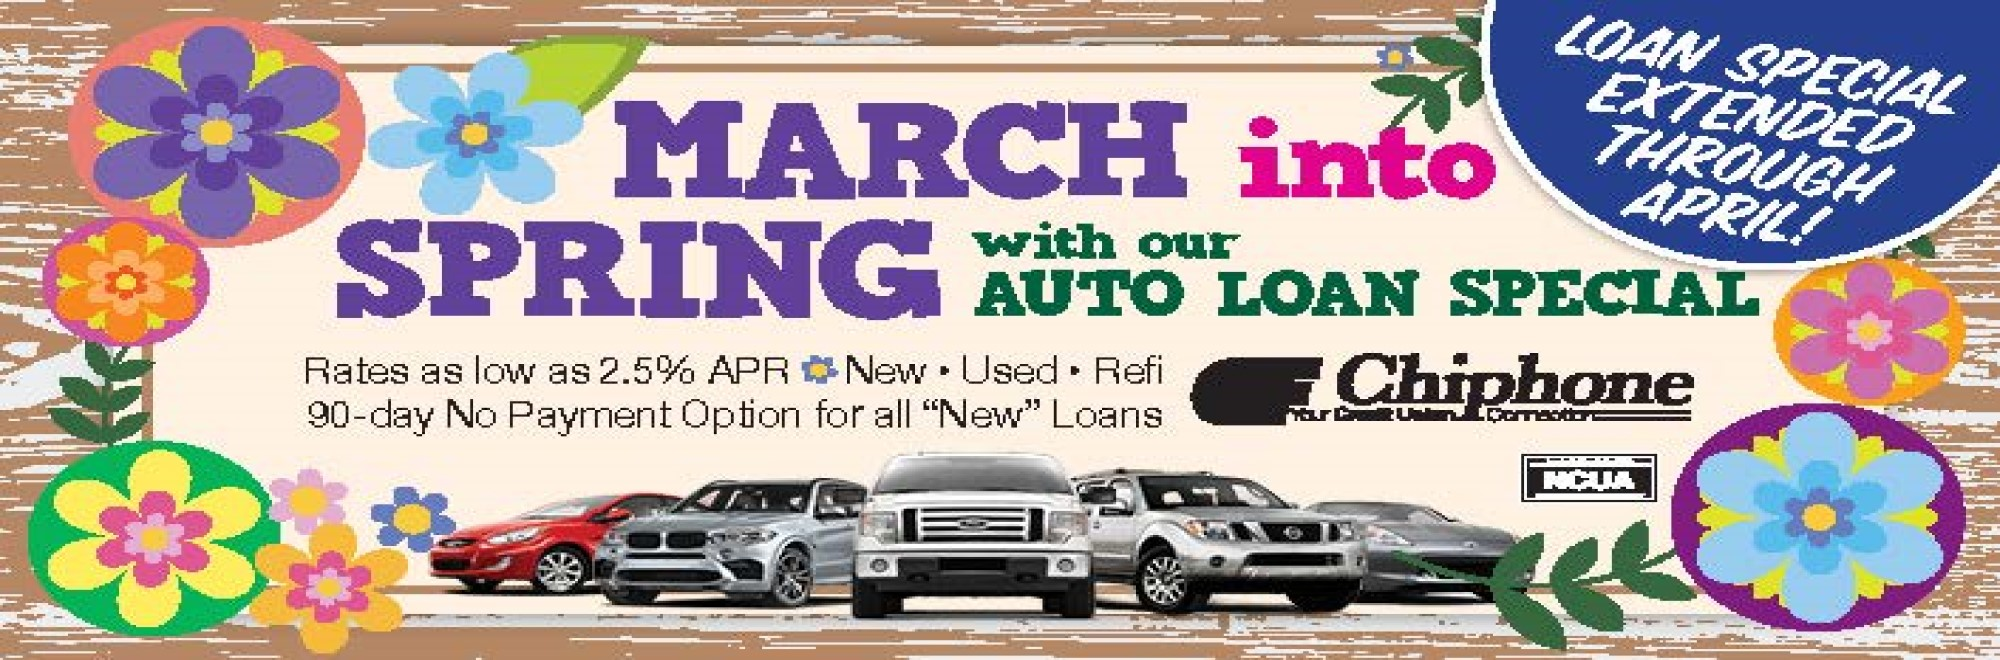 MARCH INTO SPRING AUTO LOAN SPECIAL!